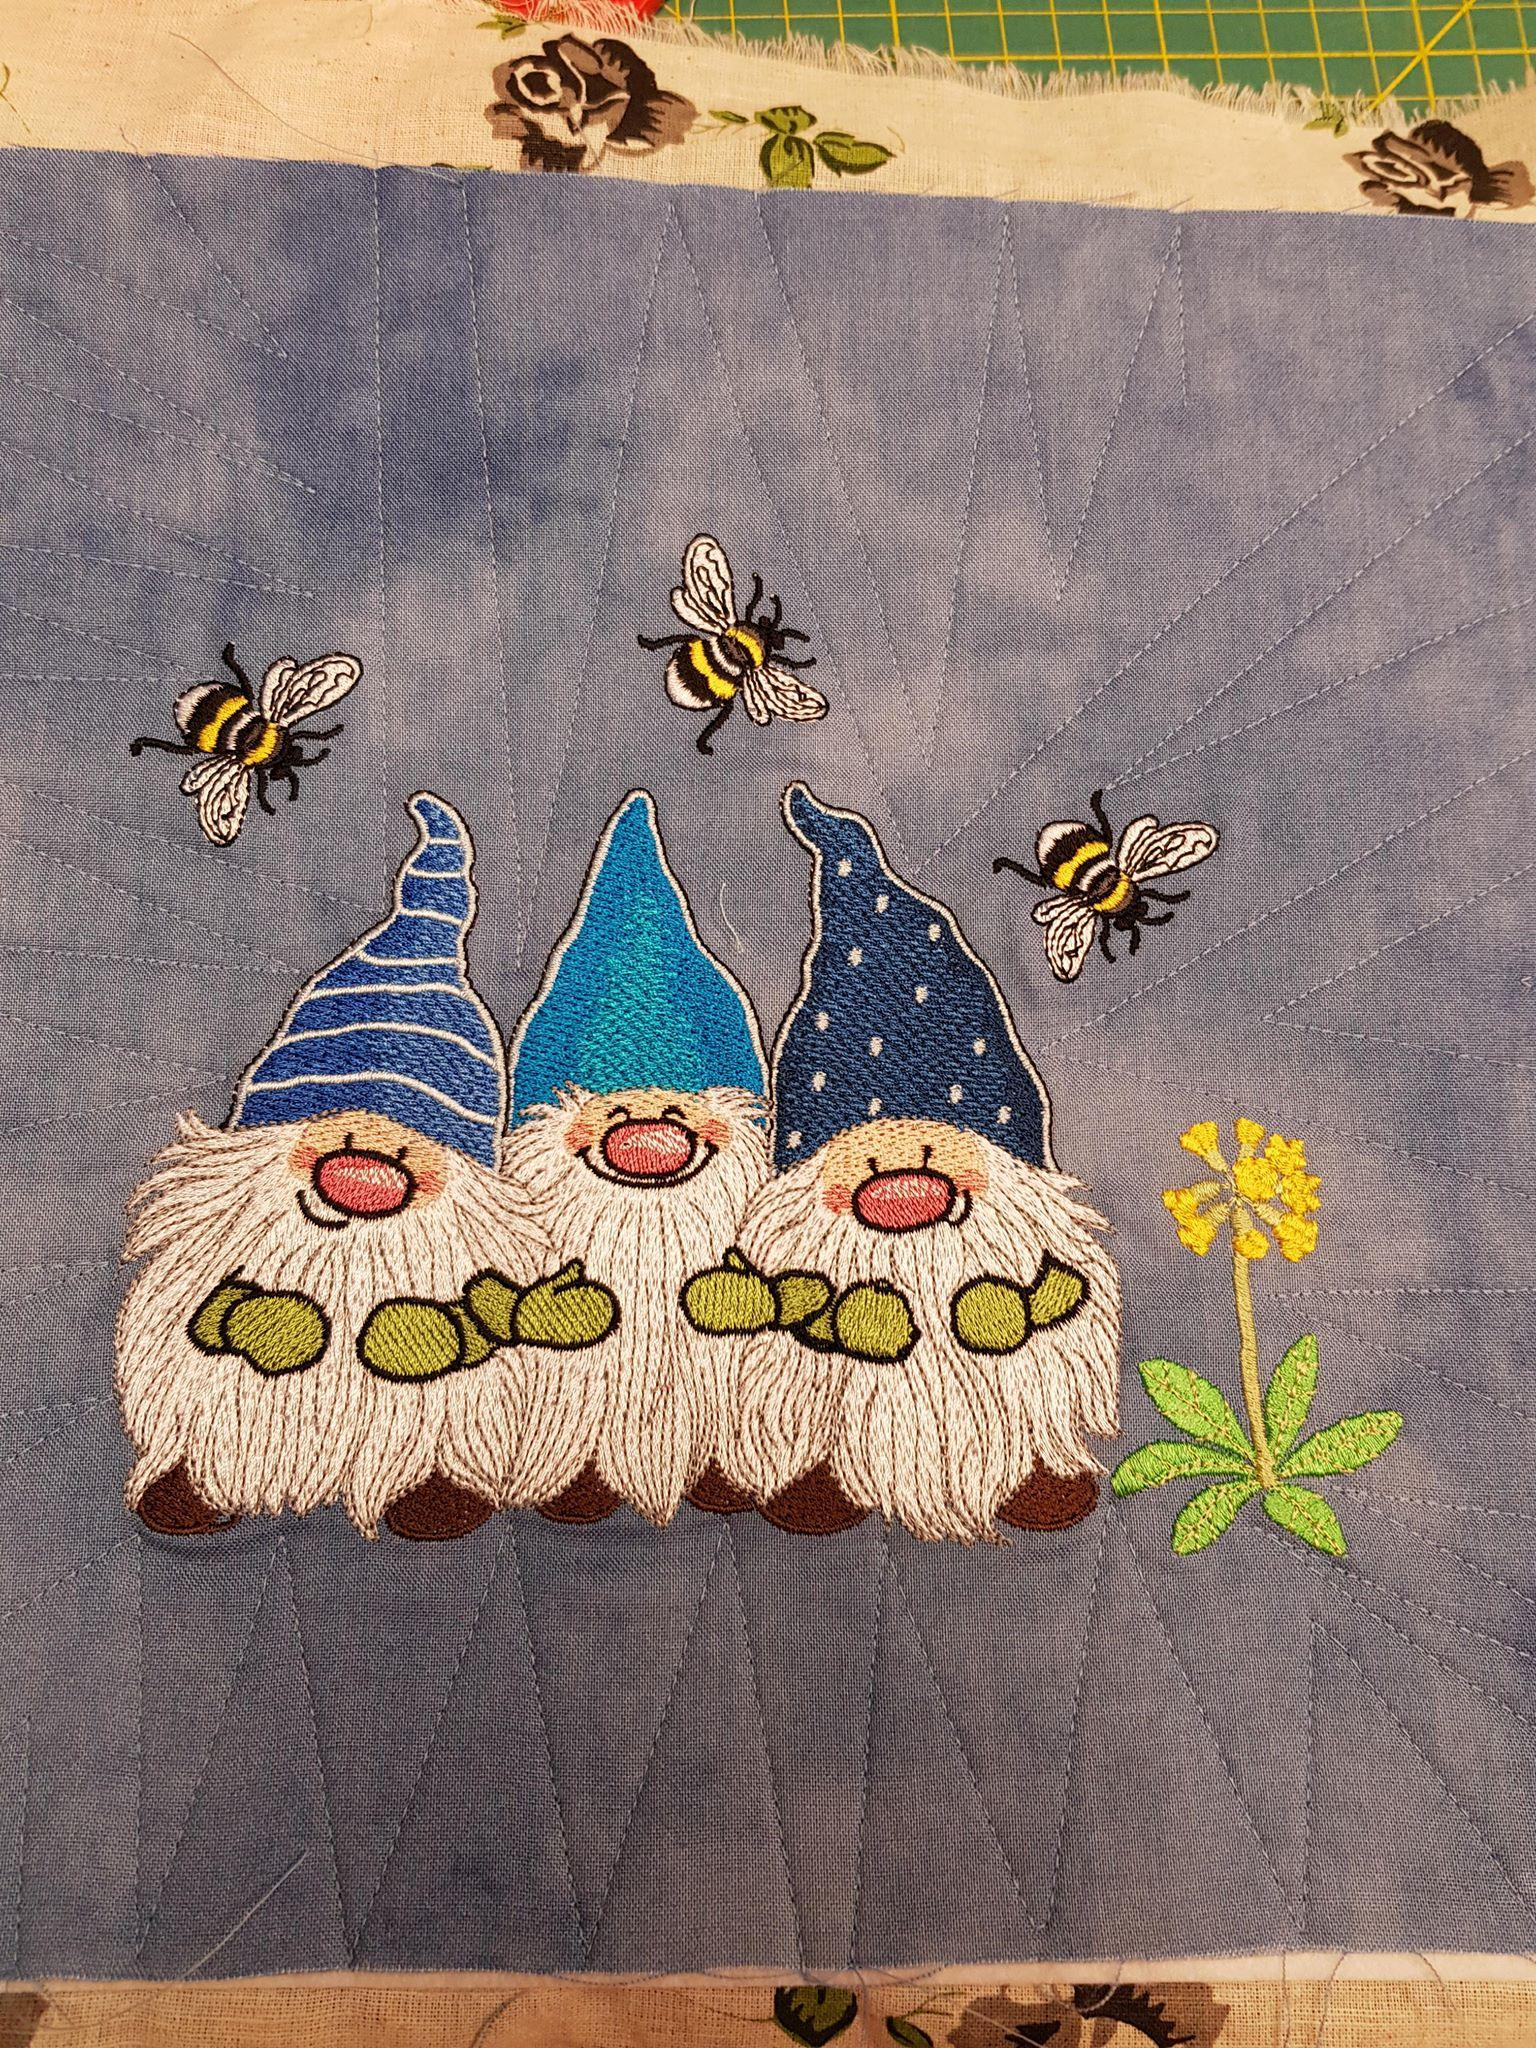 Merry dwarves embroidery design